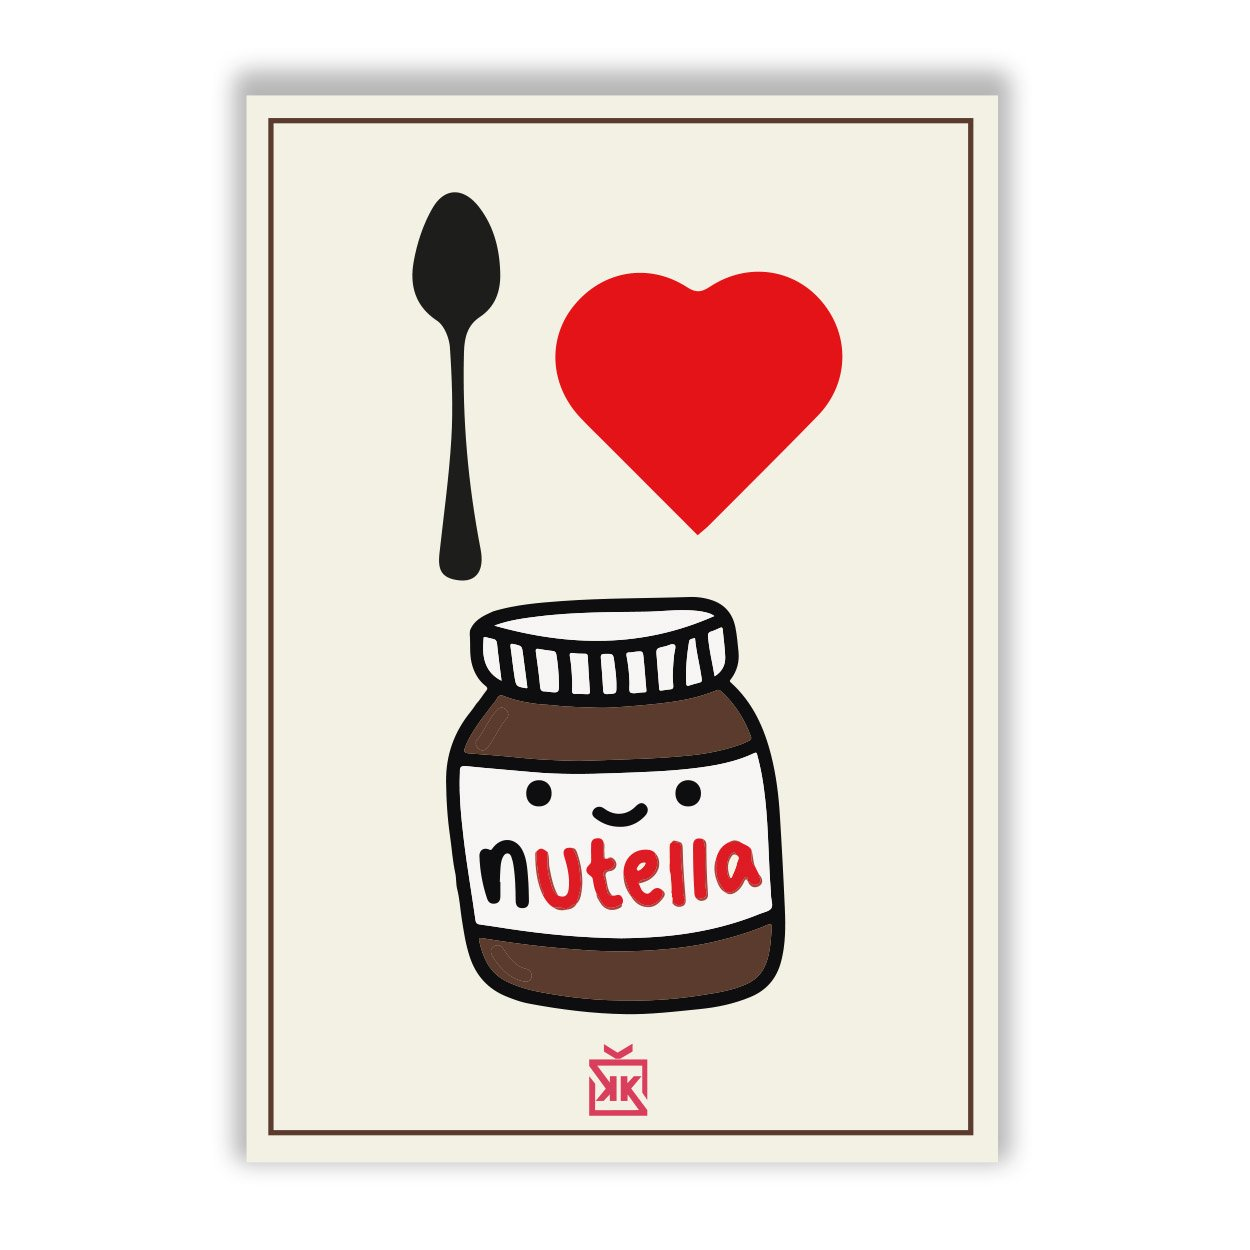 877508-i-nutella-motto-karti